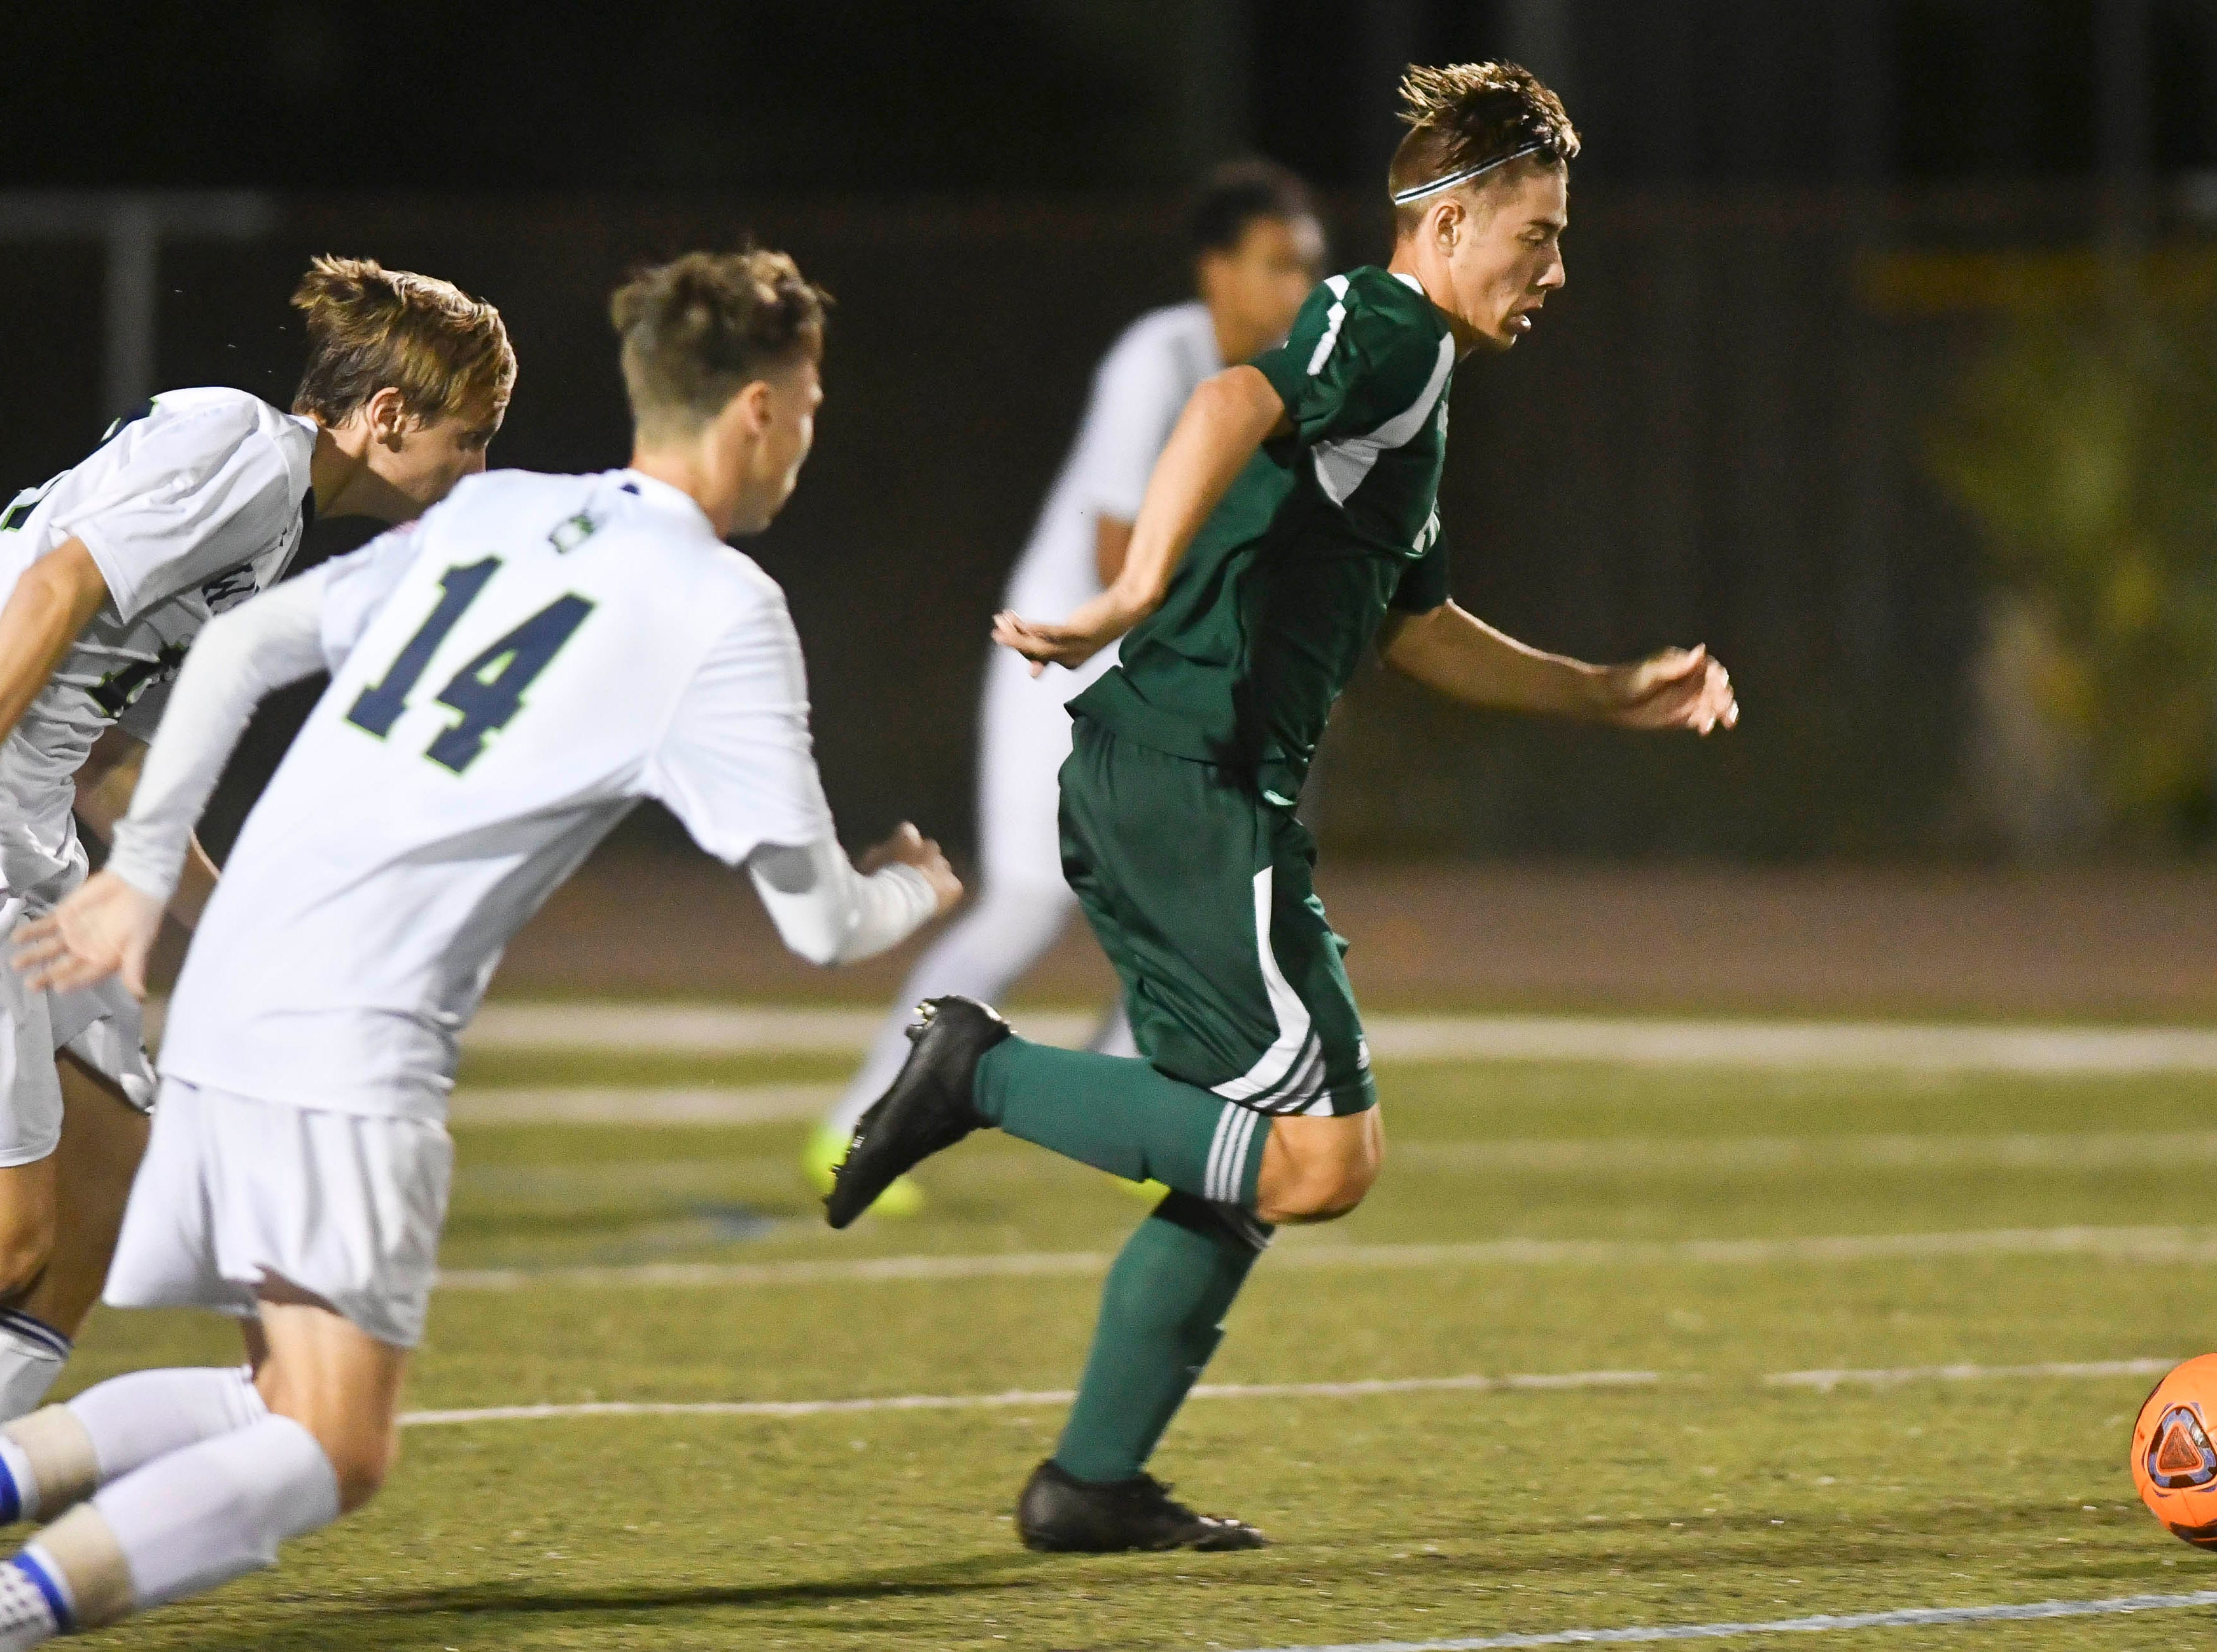 Aden O'Hara of Melbourne drives down towards the Windermere goal during Saturday's Class 4A boys soccer regional semifinal.